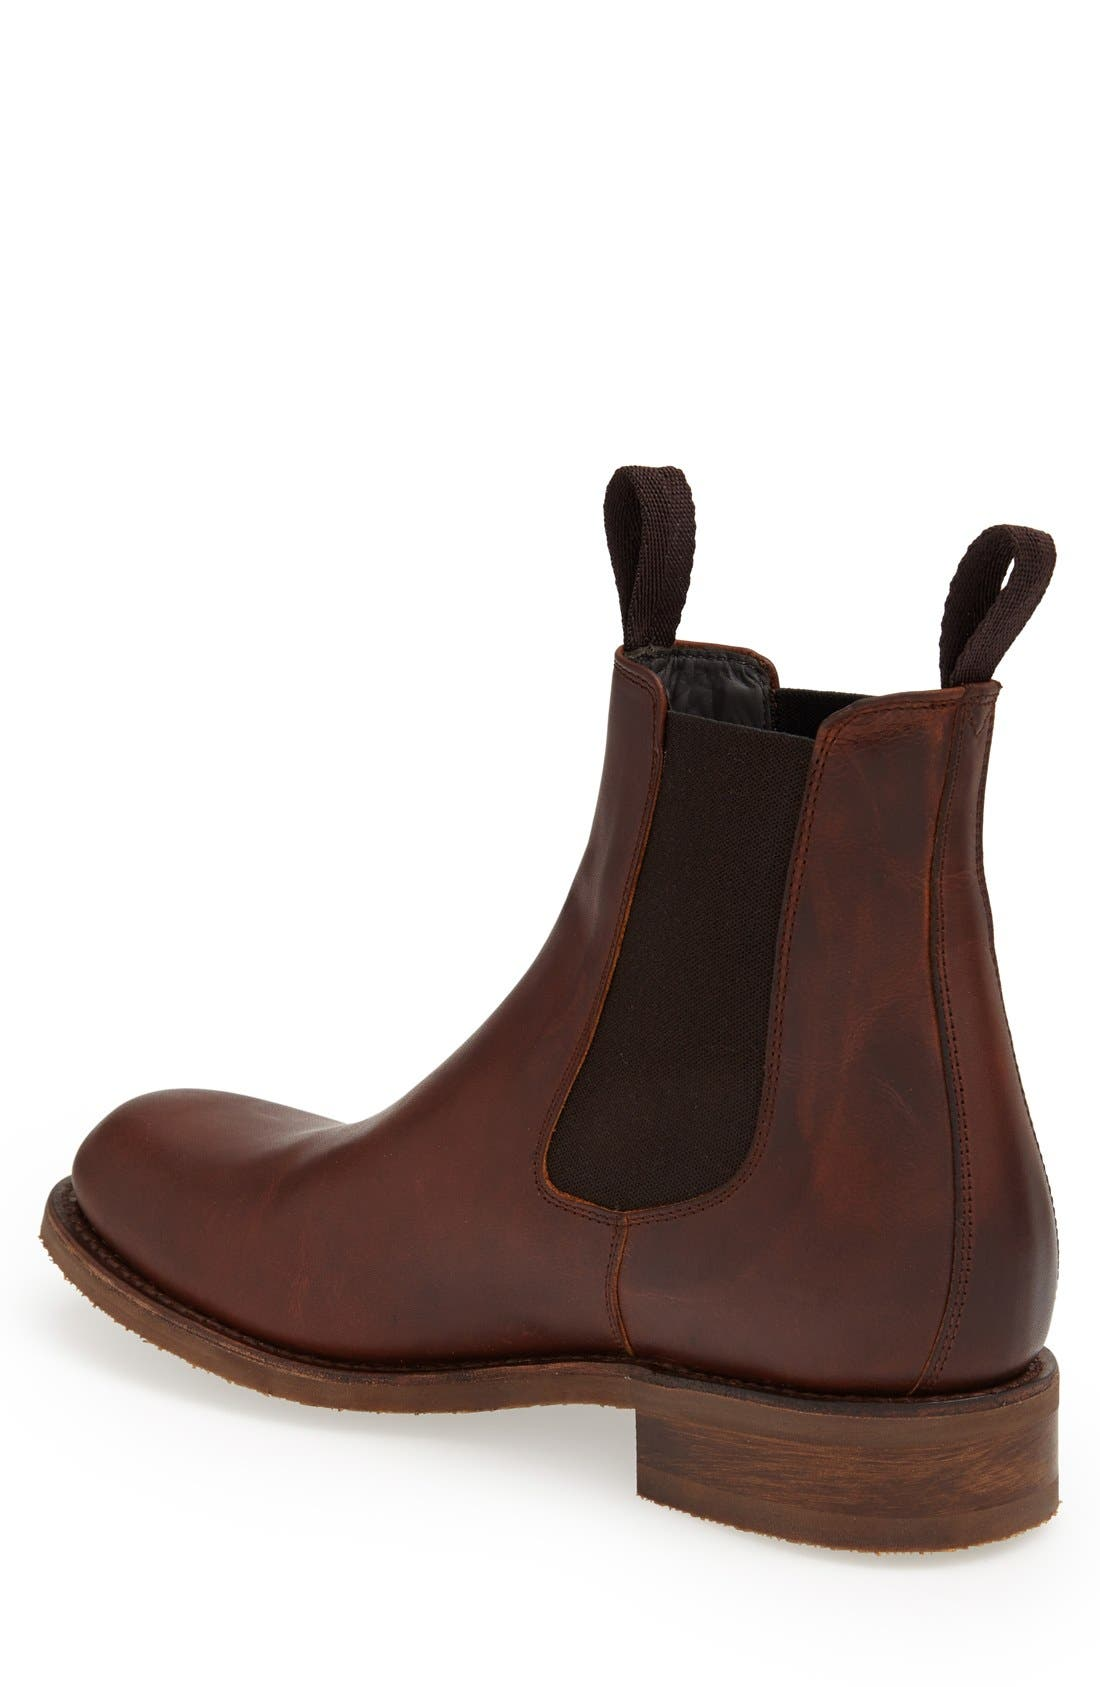 'Al' Chelsea Boot,                             Alternate thumbnail 5, color,                             TAN